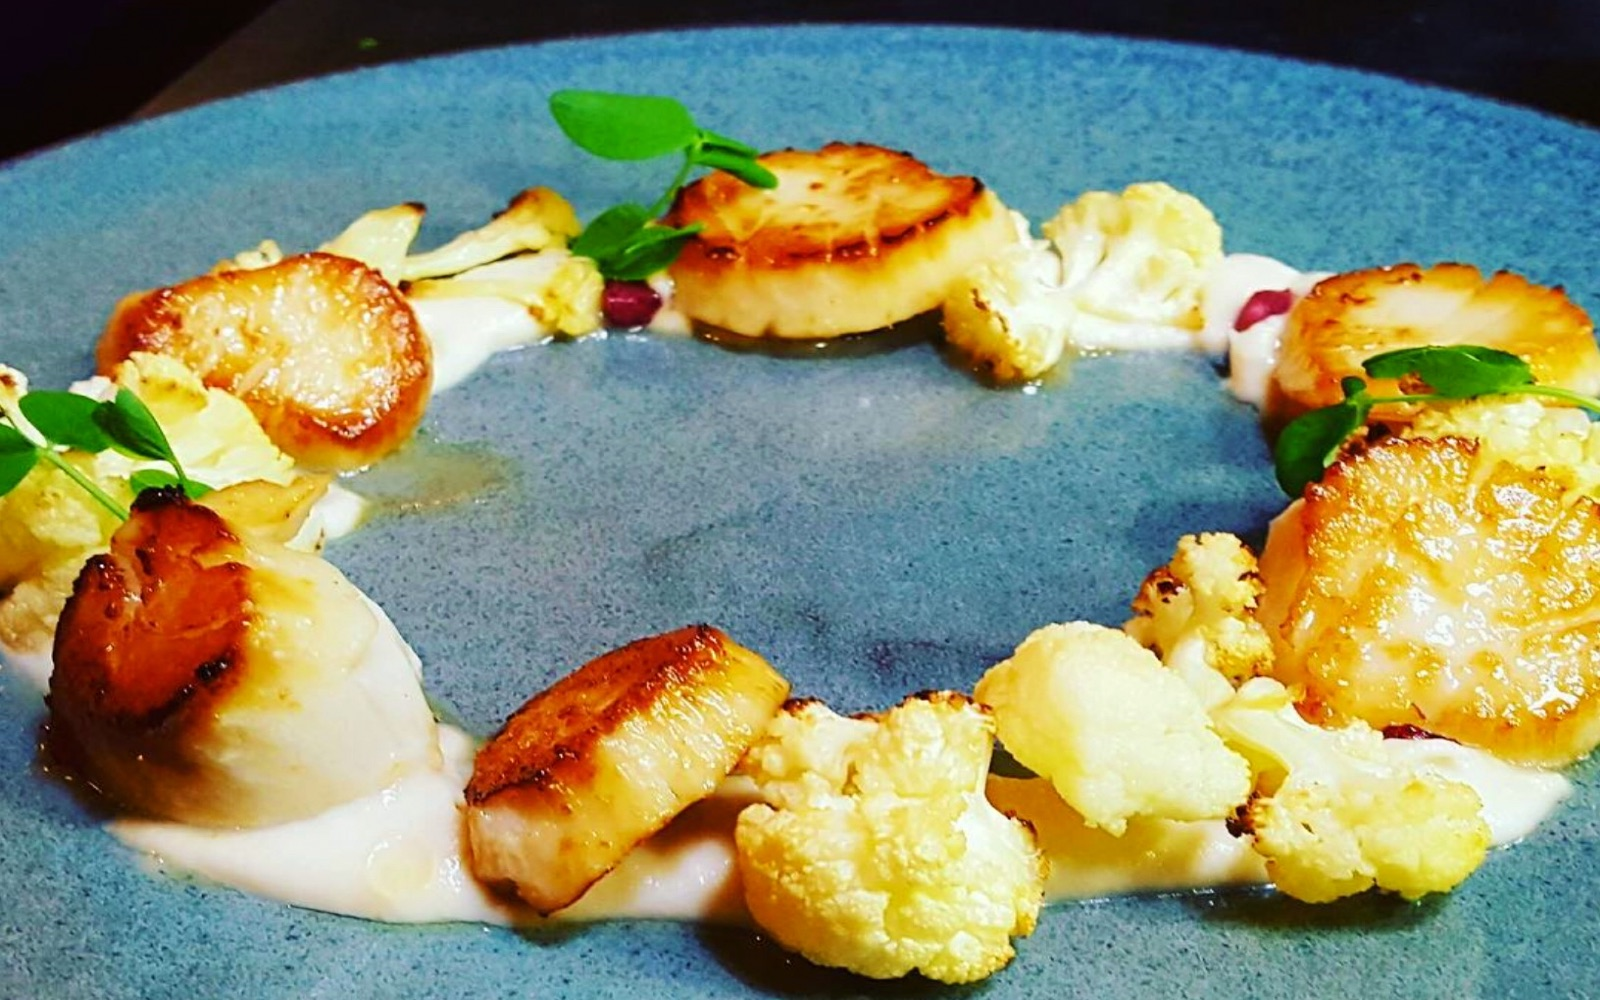 Seared scallops with cauliflower at Absinthe Bistro, Commercial Drive